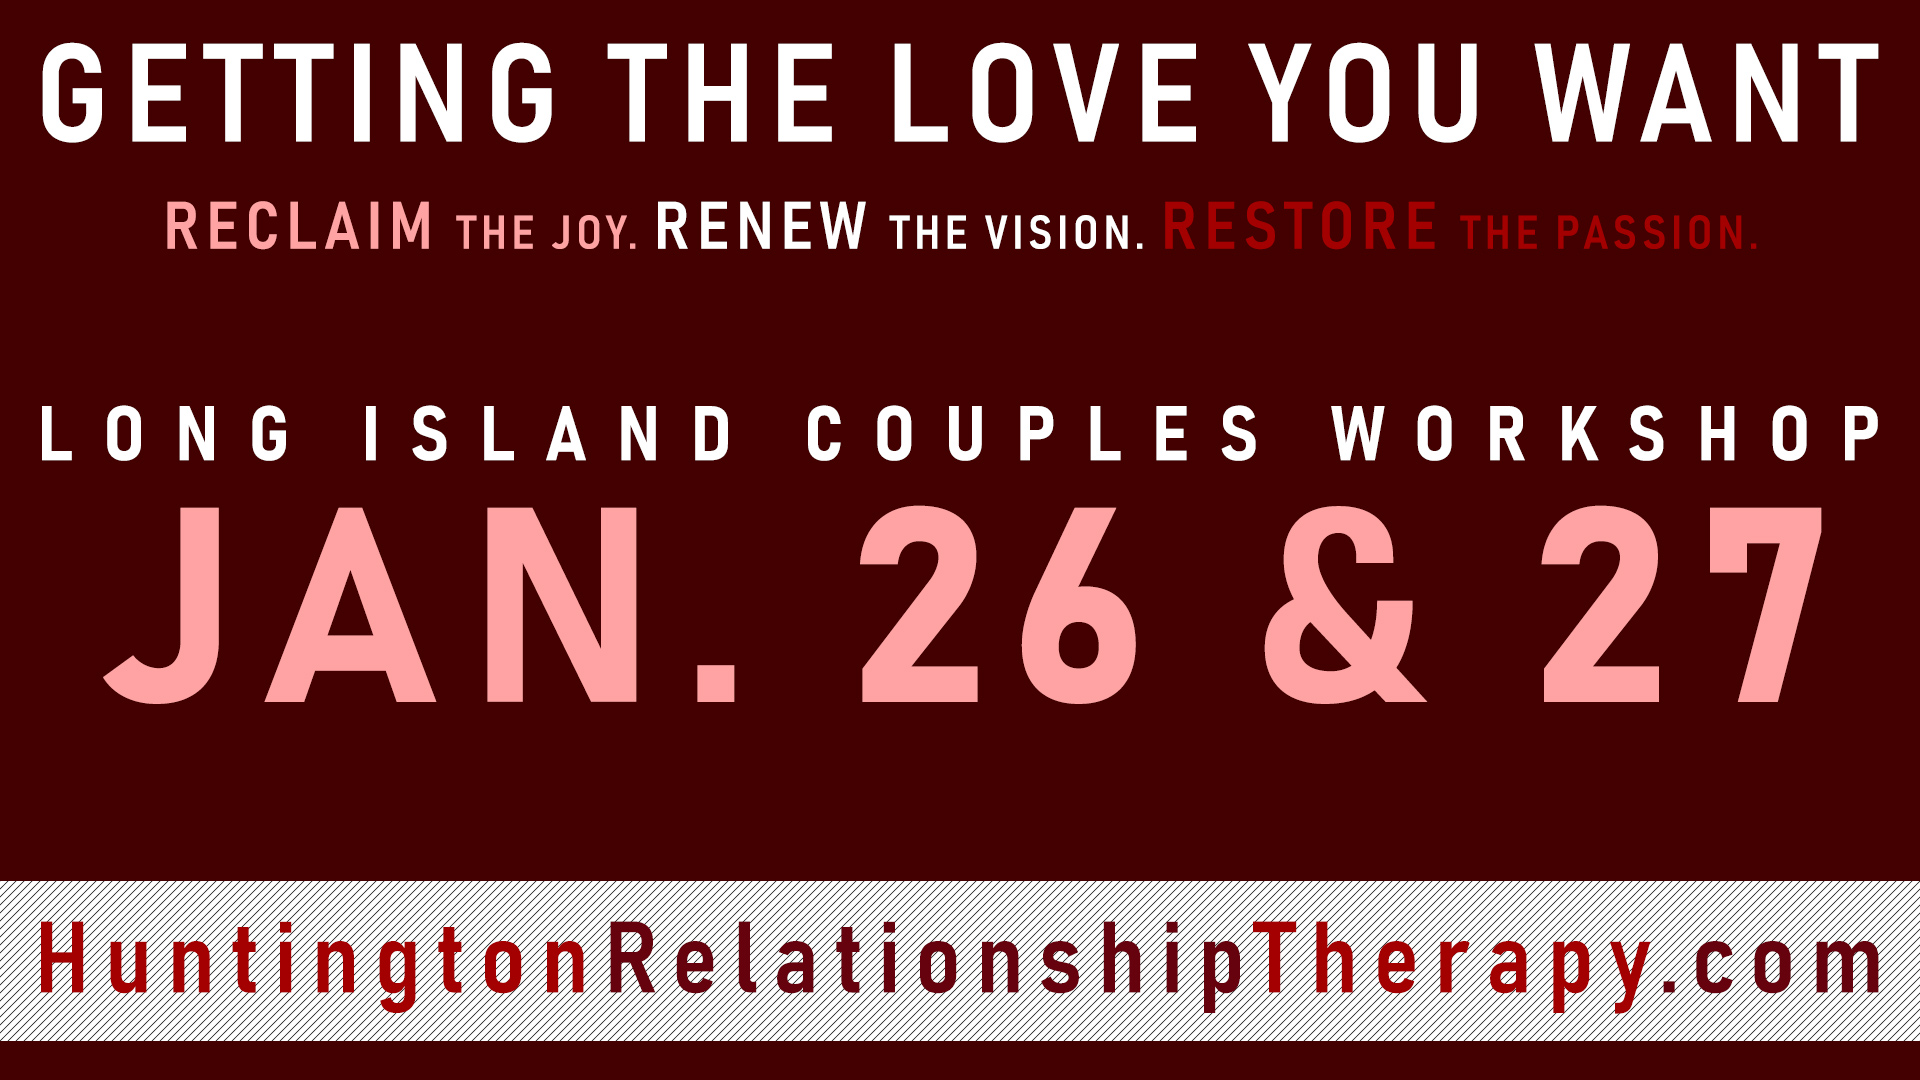 couples workshop JAN 26 & 27, 2019